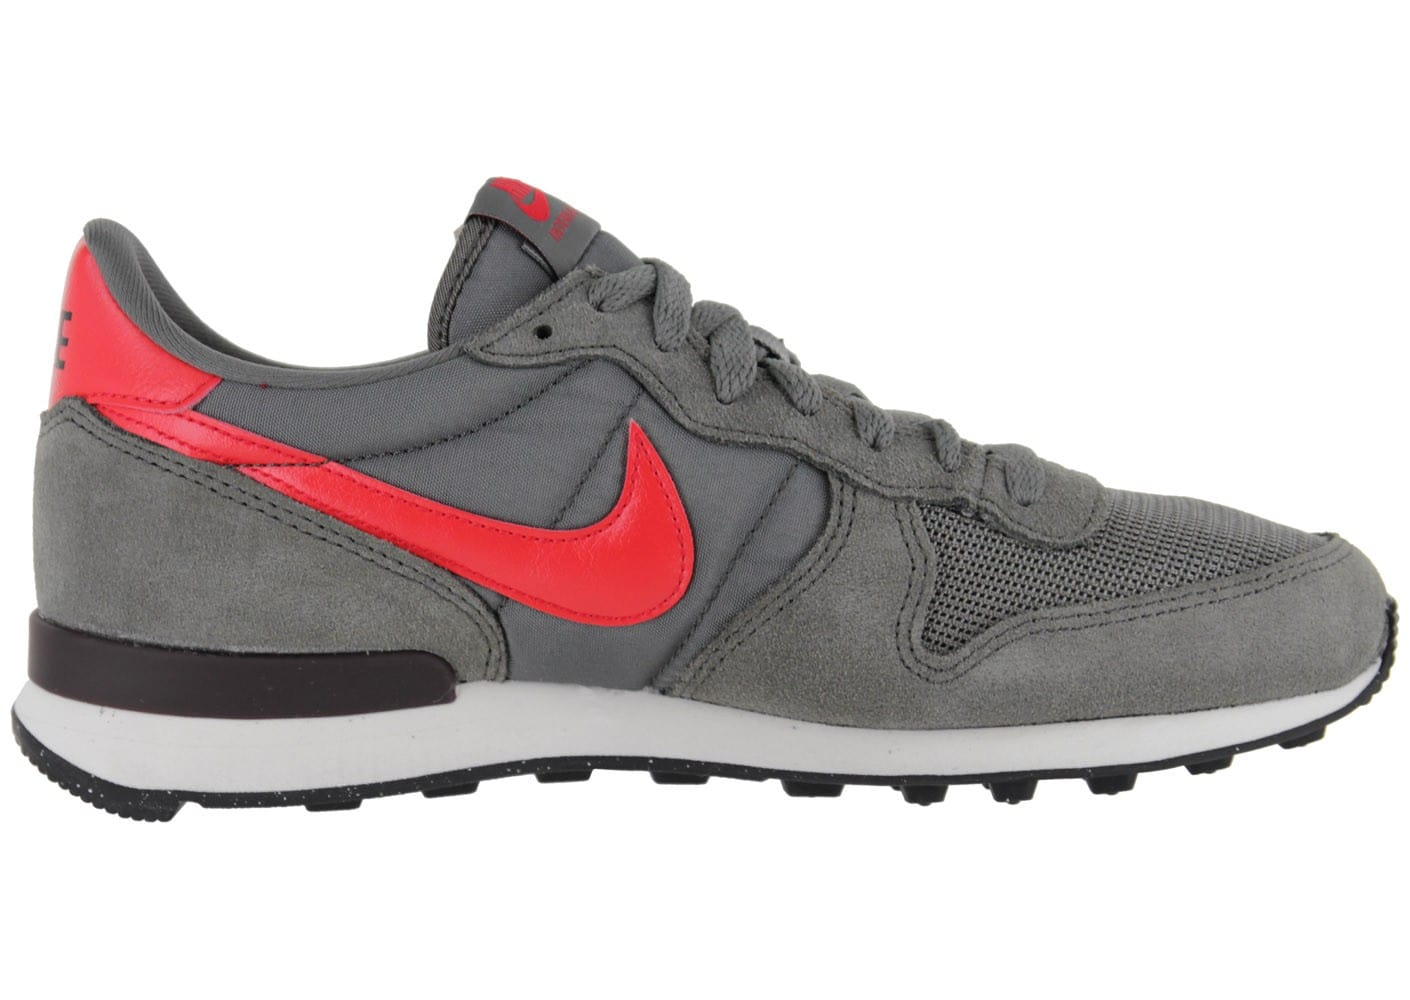 nike internationalist grise chaussures homme chausport. Black Bedroom Furniture Sets. Home Design Ideas